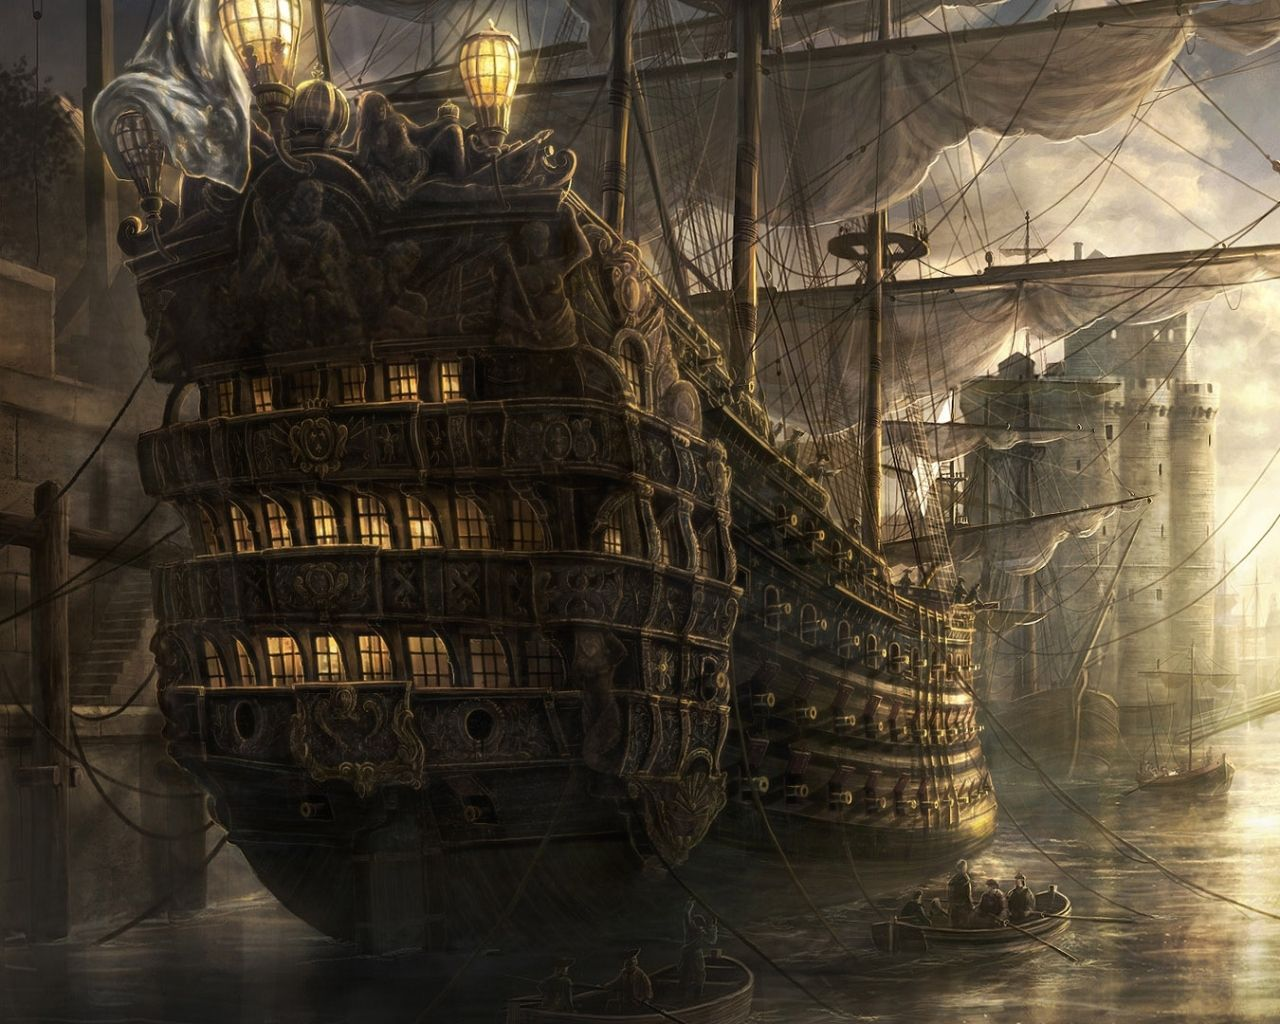 Fantasy ship cliff jolly roger pirate ship rock lightning wallpaper - Riches Or Death A Pirate Tale Ooc Forum Roleplaying Forum Games